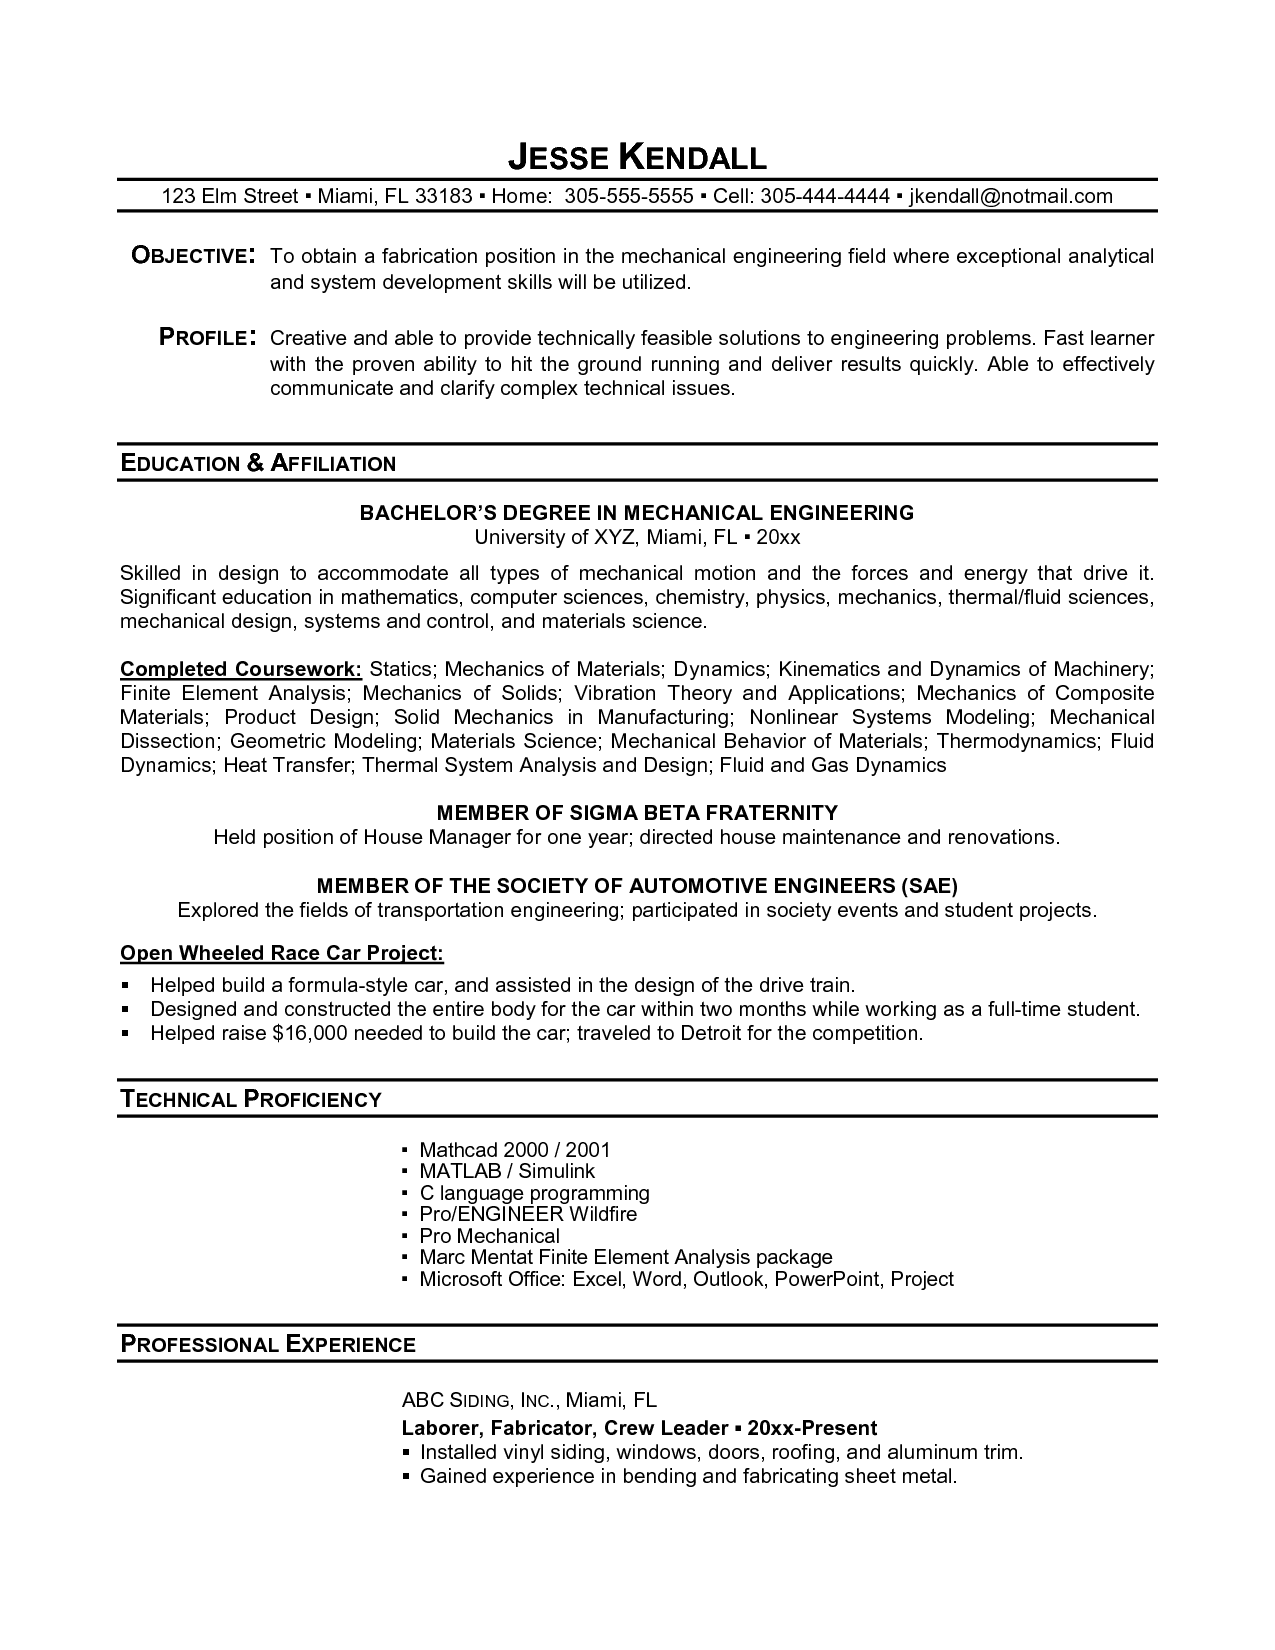 resume examples student examples collge high school resume samples for students examples student resume sample. Resume Example. Resume CV Cover Letter